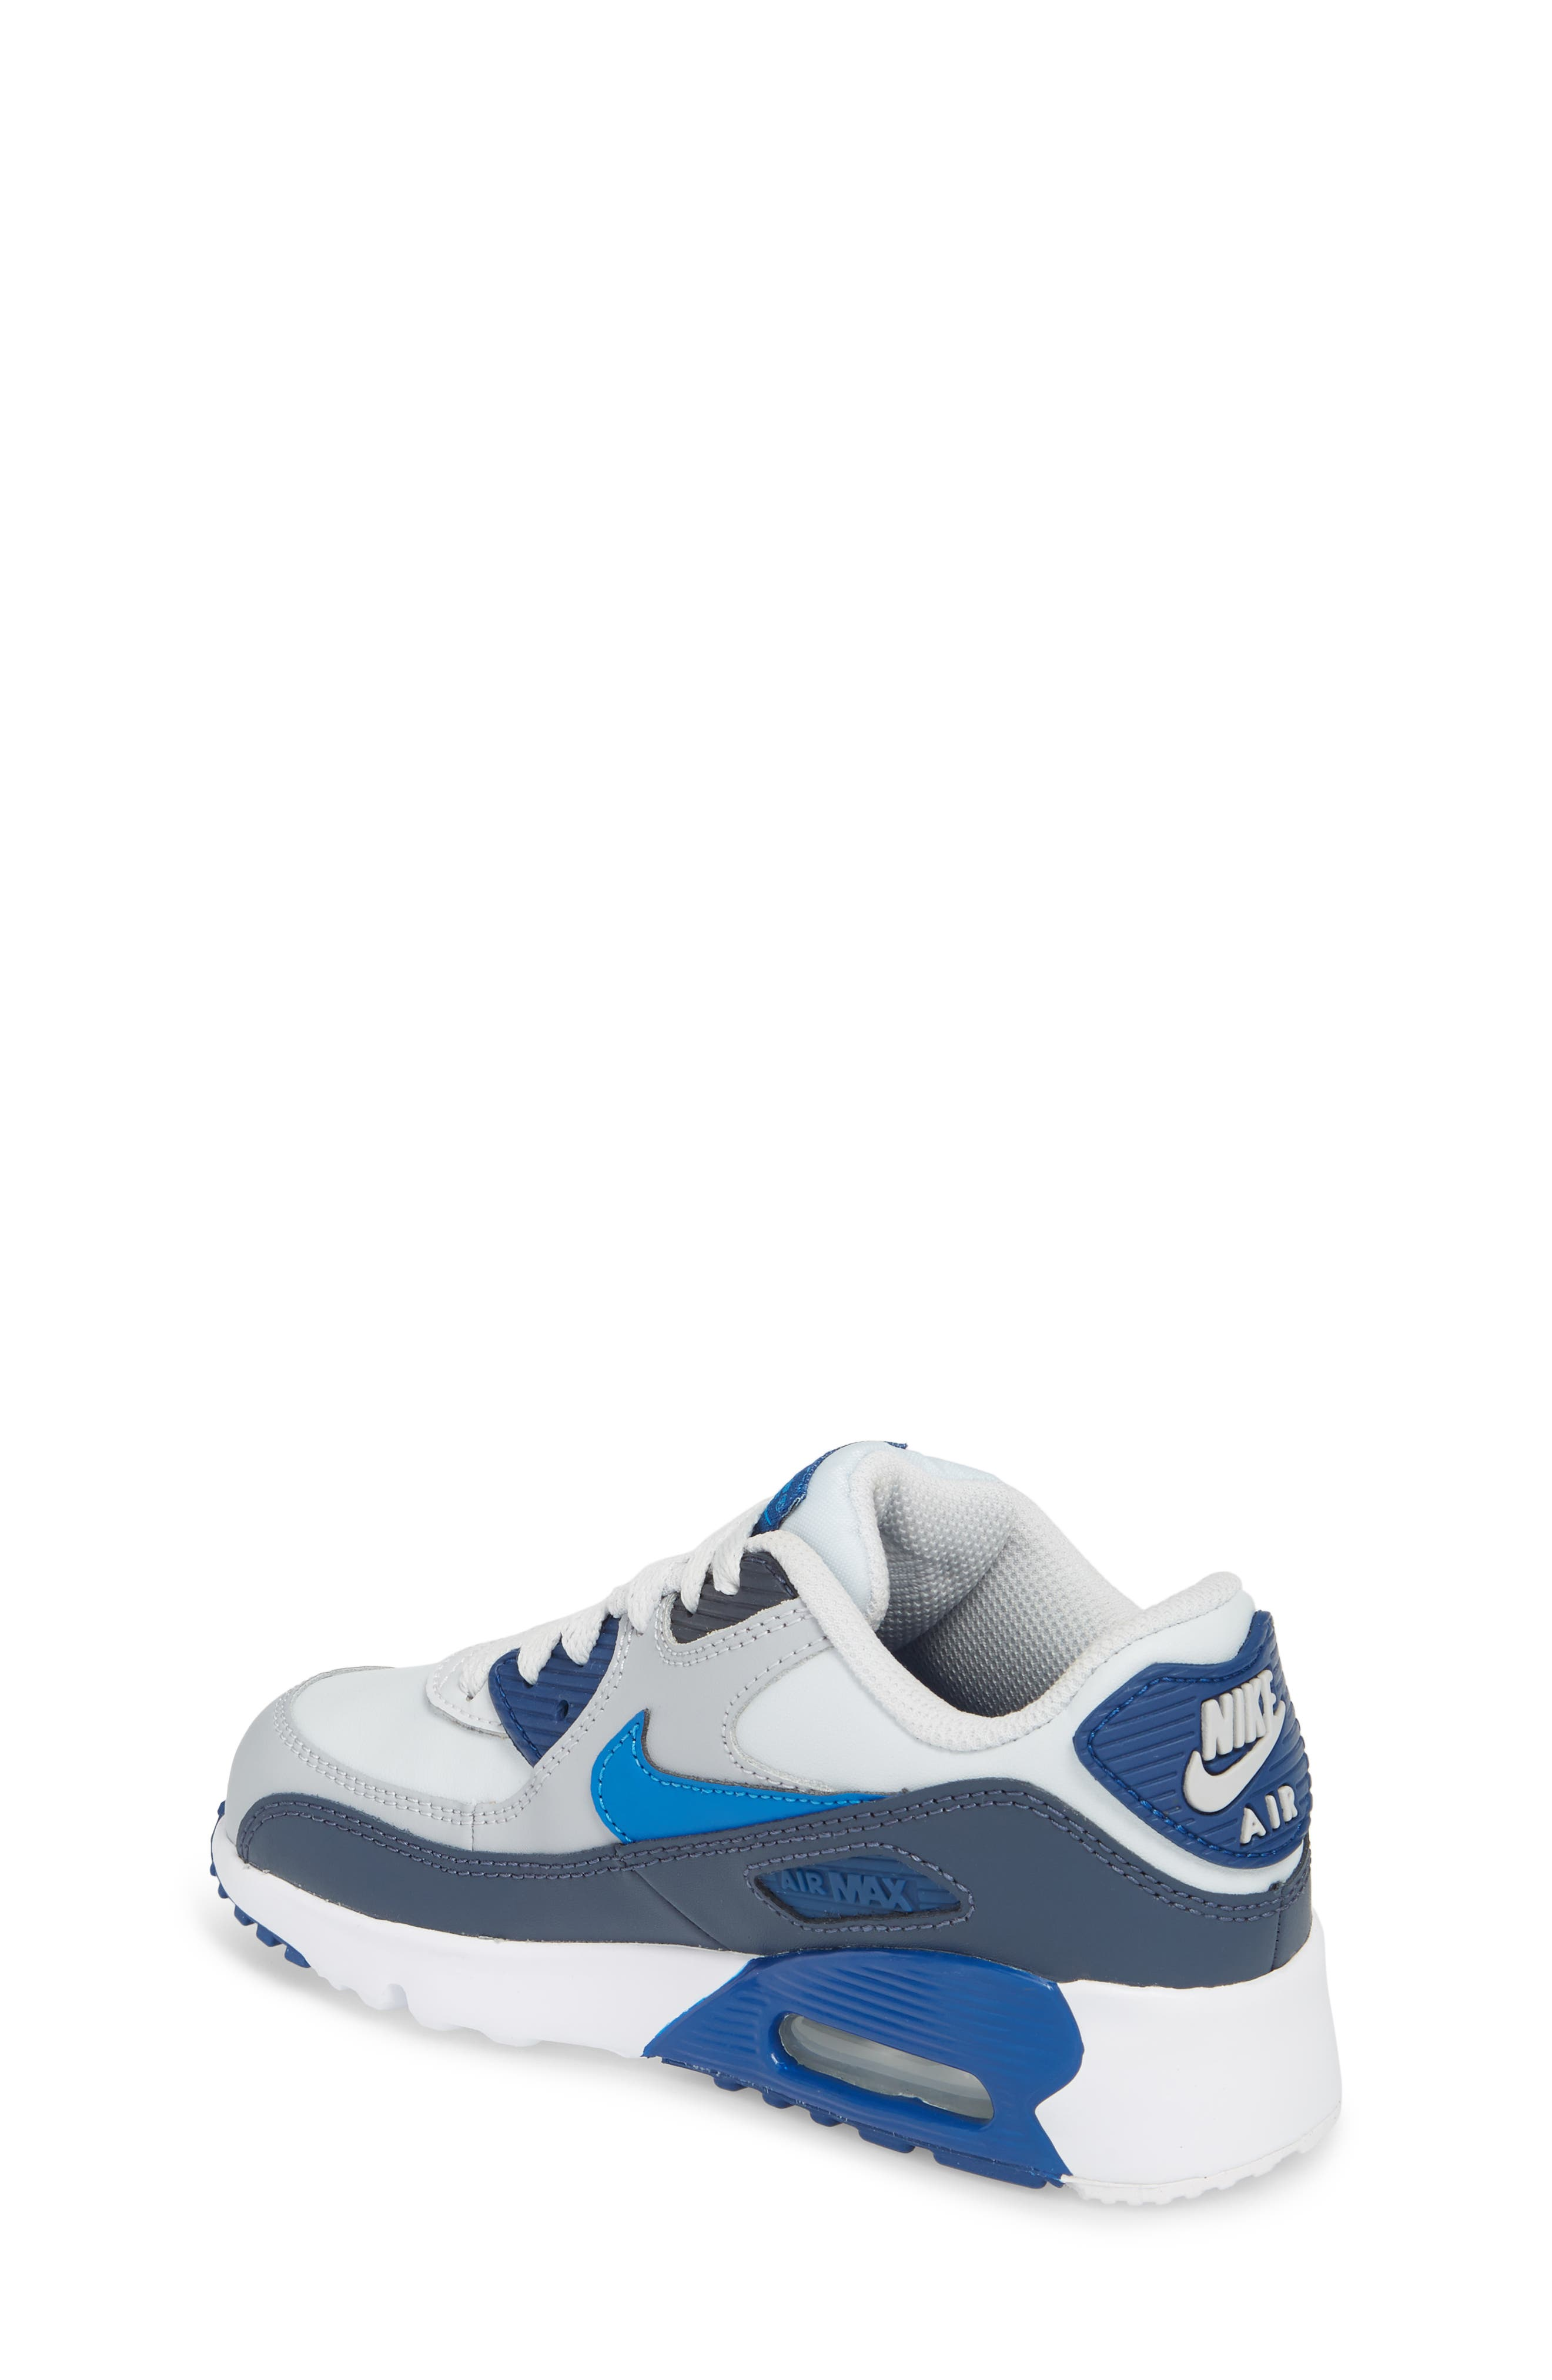 Air Max 90 Sneaker,                             Alternate thumbnail 2, color,                             Blue Nebula/ Wolf Grey